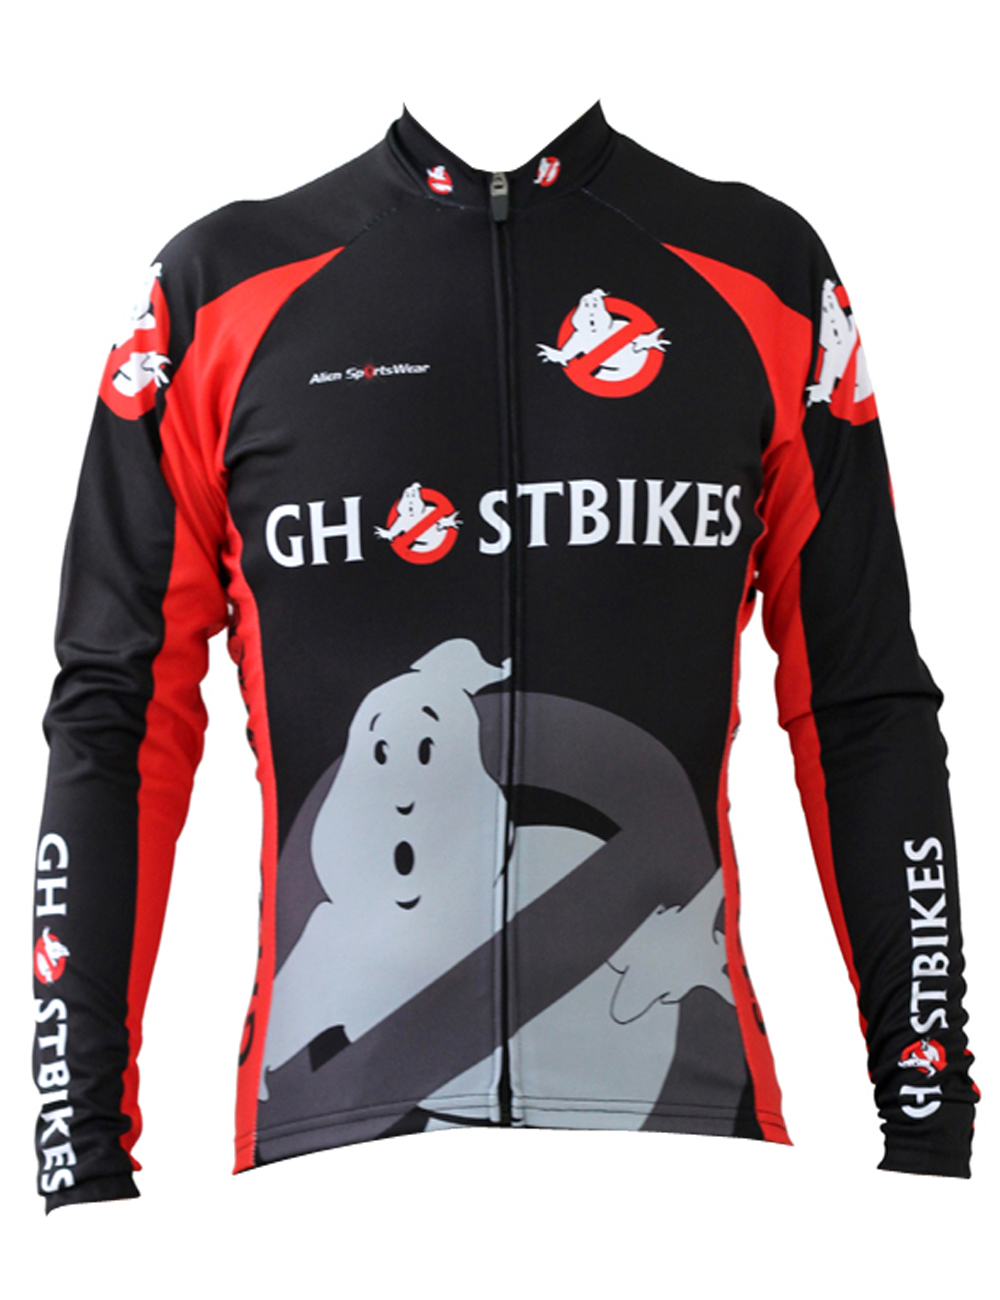 Ghost Bikes Cycling shirt bike equipment Mens Long Sleeve Cycling Jersey Cycling Clothing Bike Shirt Size 2XS To 6XL ILPALADIN new 17 black red spider mens breathable bike clothing polyester autumn long sleeve cycling jerseys size 2xs to 6xl